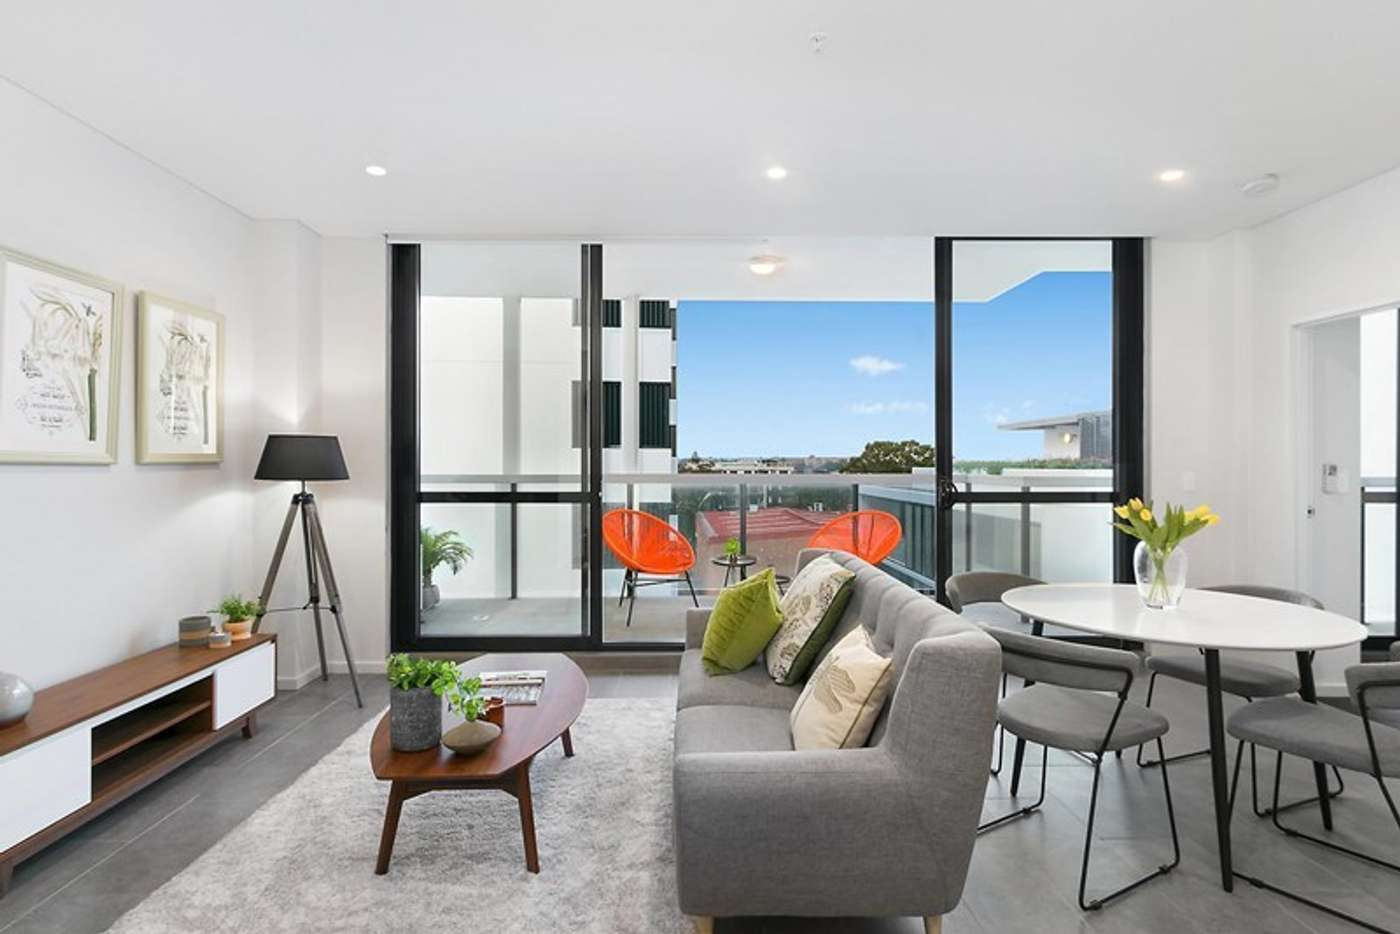 Main view of Homely apartment listing, 311/581 Gardeners road, Mascot NSW 2020